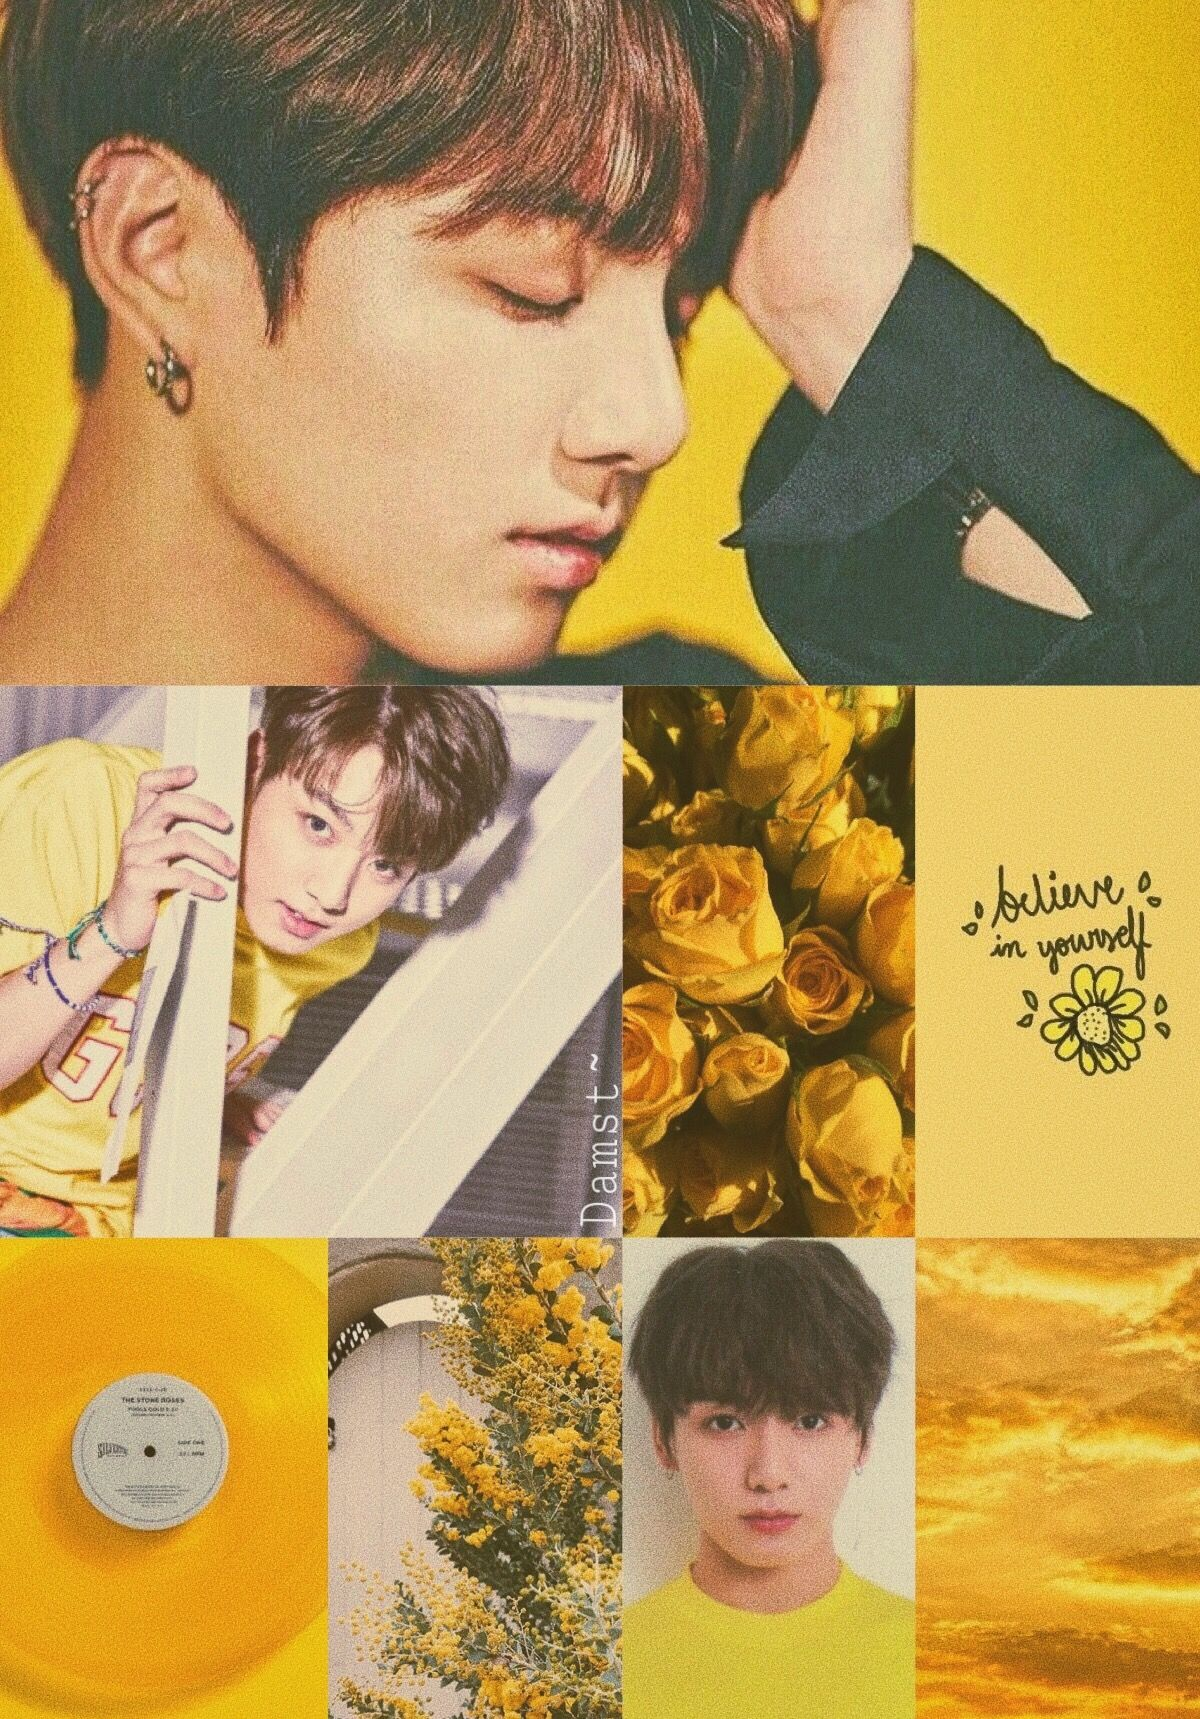 Jungkook Aesthetic Wallpaper Yellow